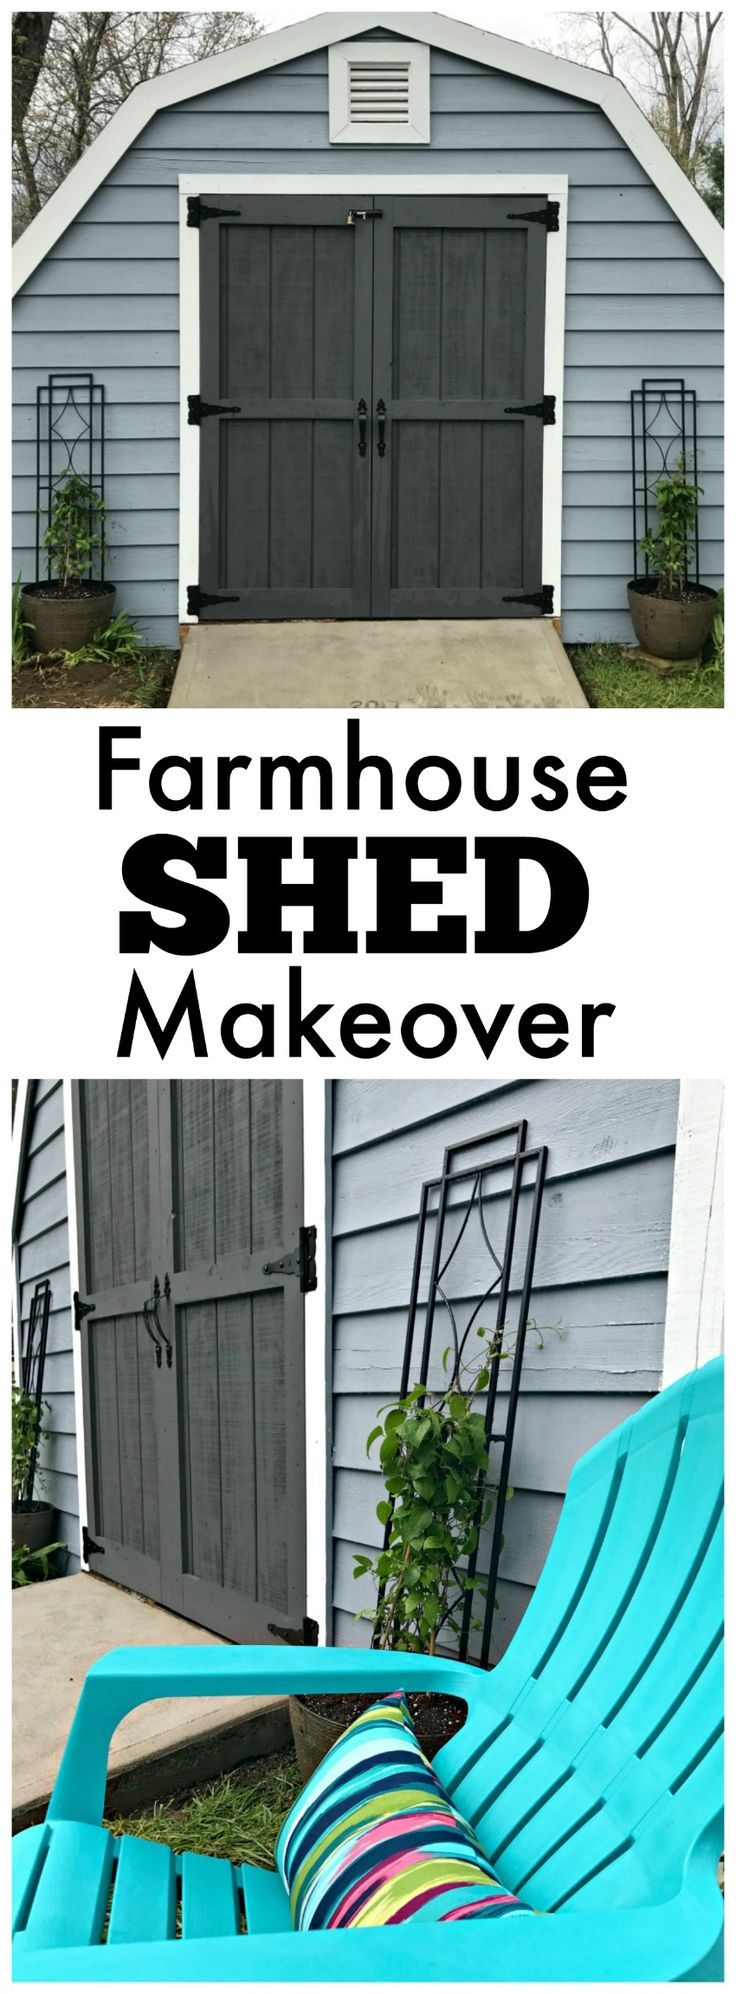 26460 best ultimate diy board images on pinterest ideas para casa farmhouse shed makeover solutioingenieria Images